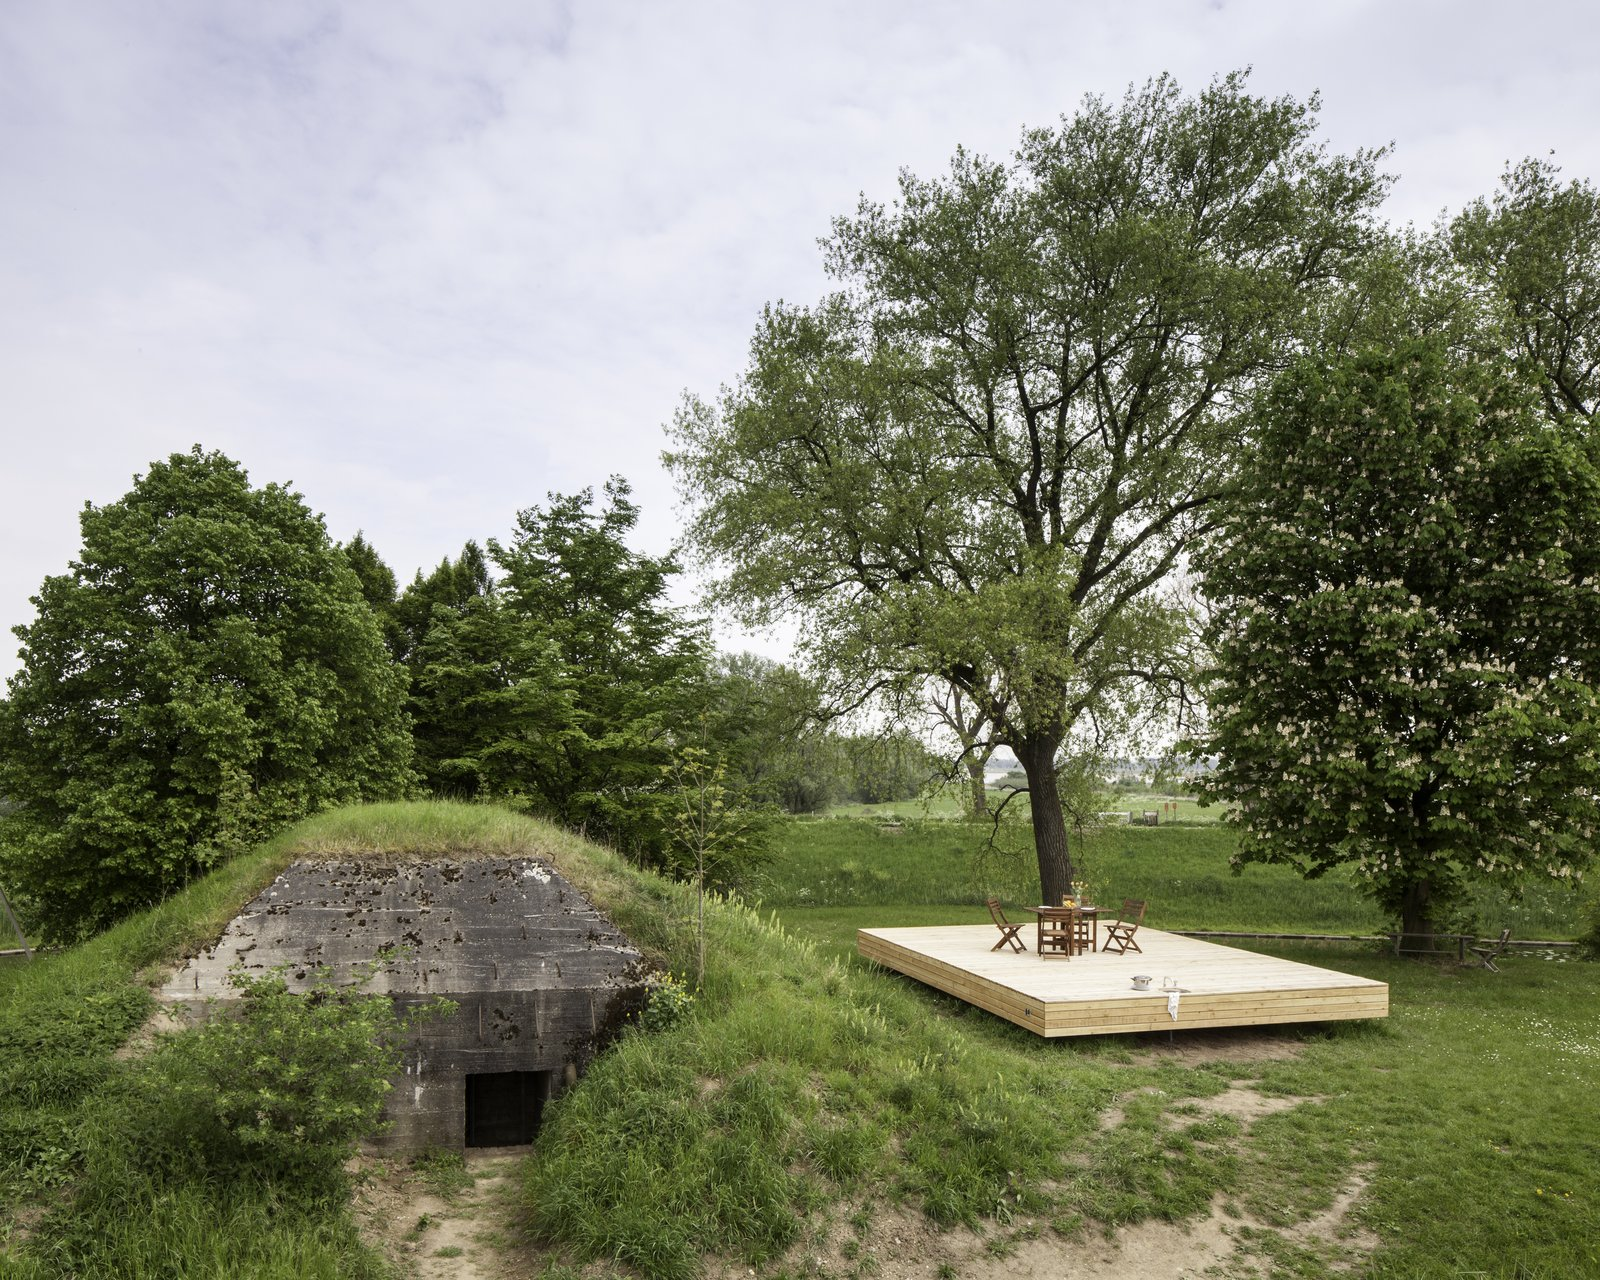 Taking inspiration from Le Cabanon by Le Corbusier—the architectural firm B-ILD conceived of modular wooden fittings which would maximize the potential of the interior space of this Bunker-turned-holiday home in Vuren, The Netherlands.